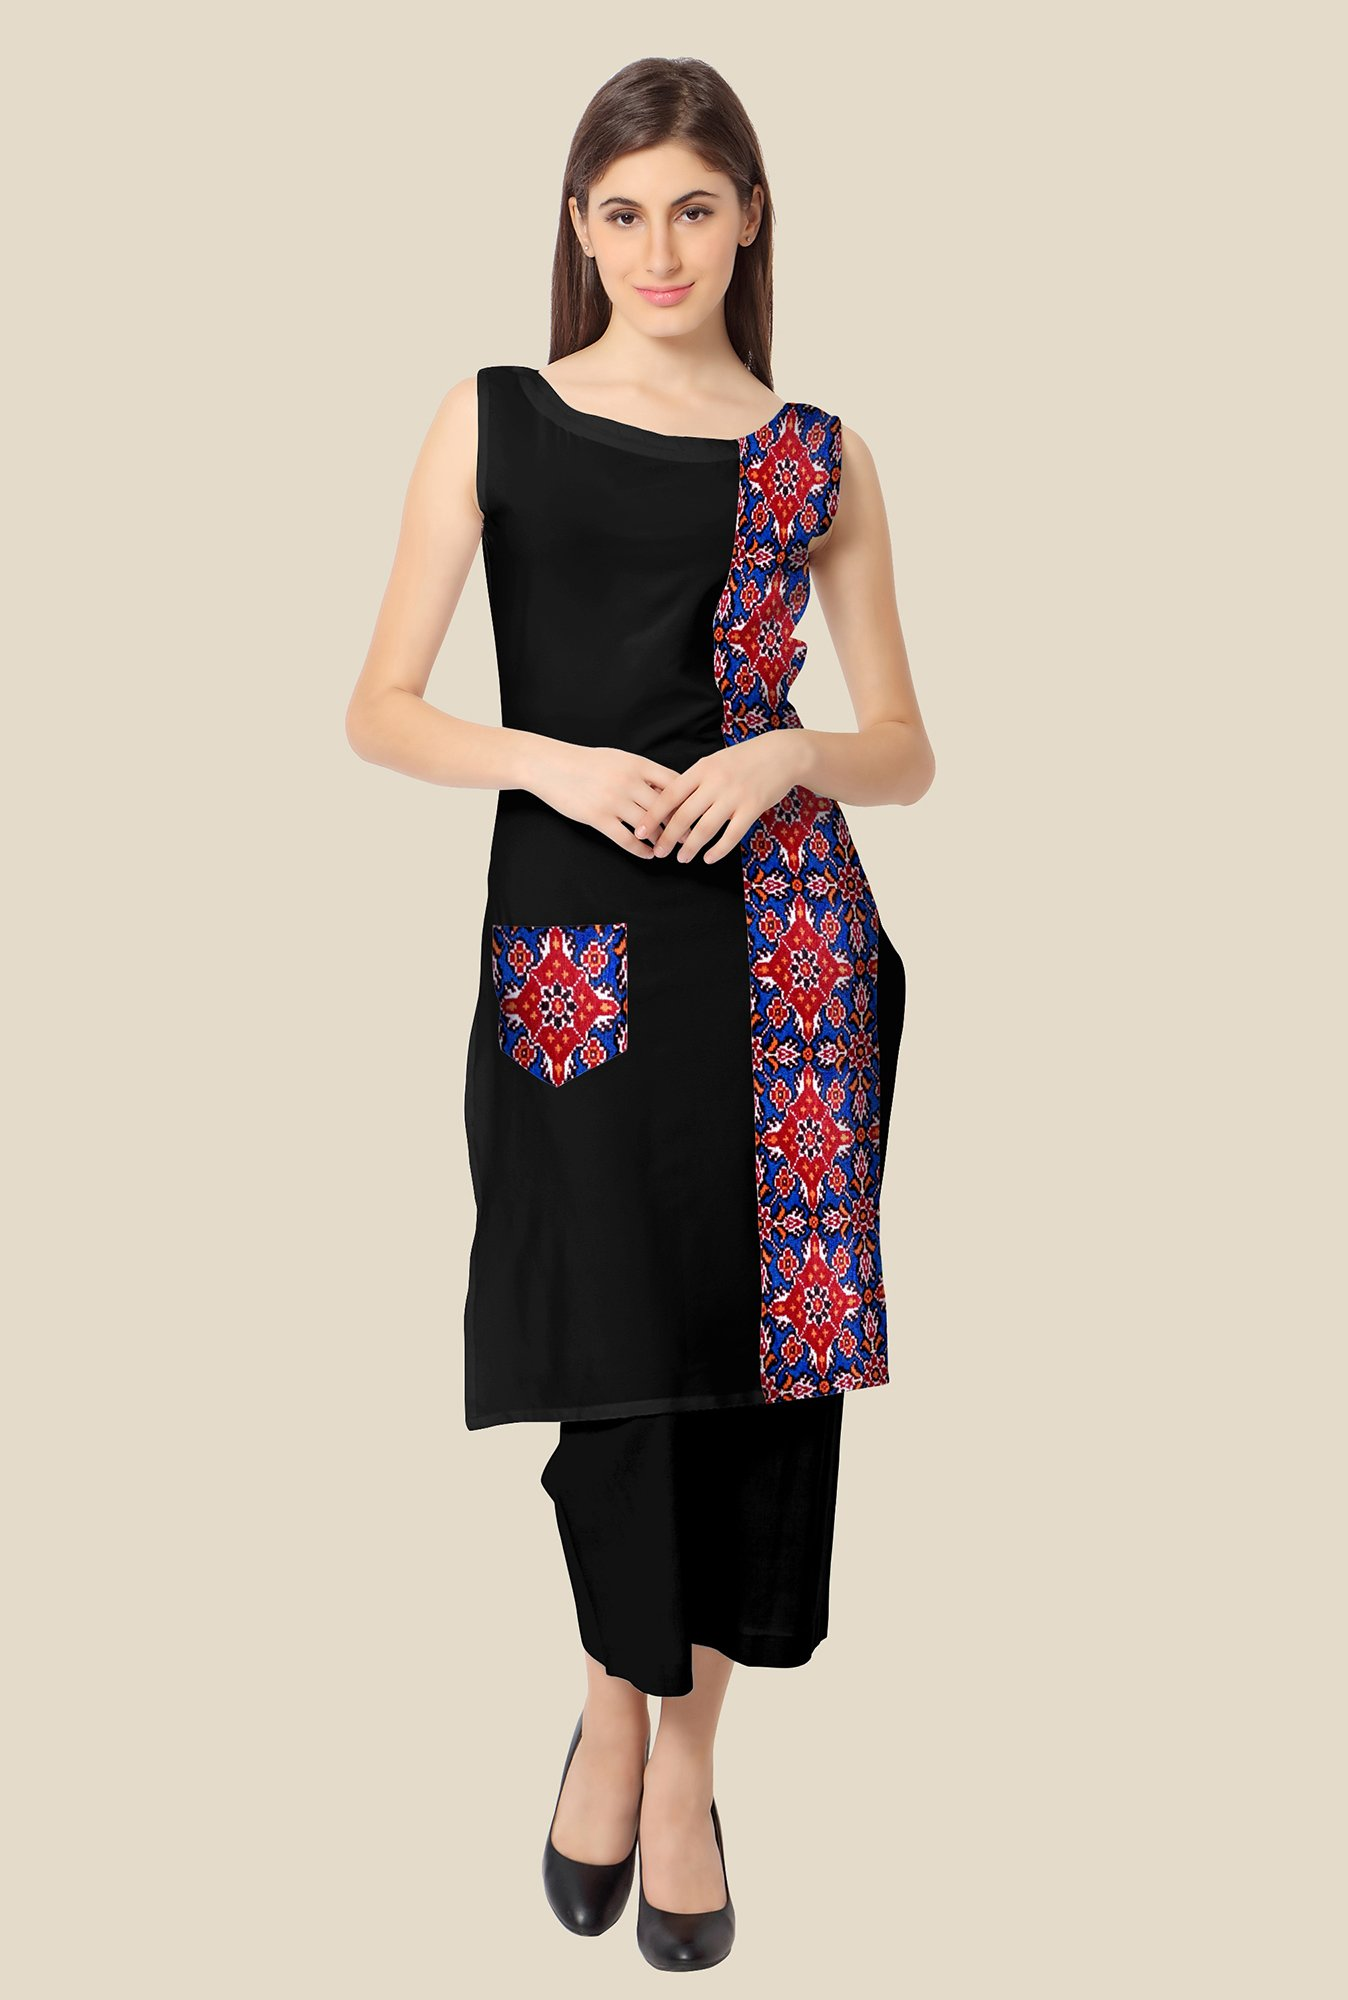 Ahalyaa Blue and Black Printed Kurta